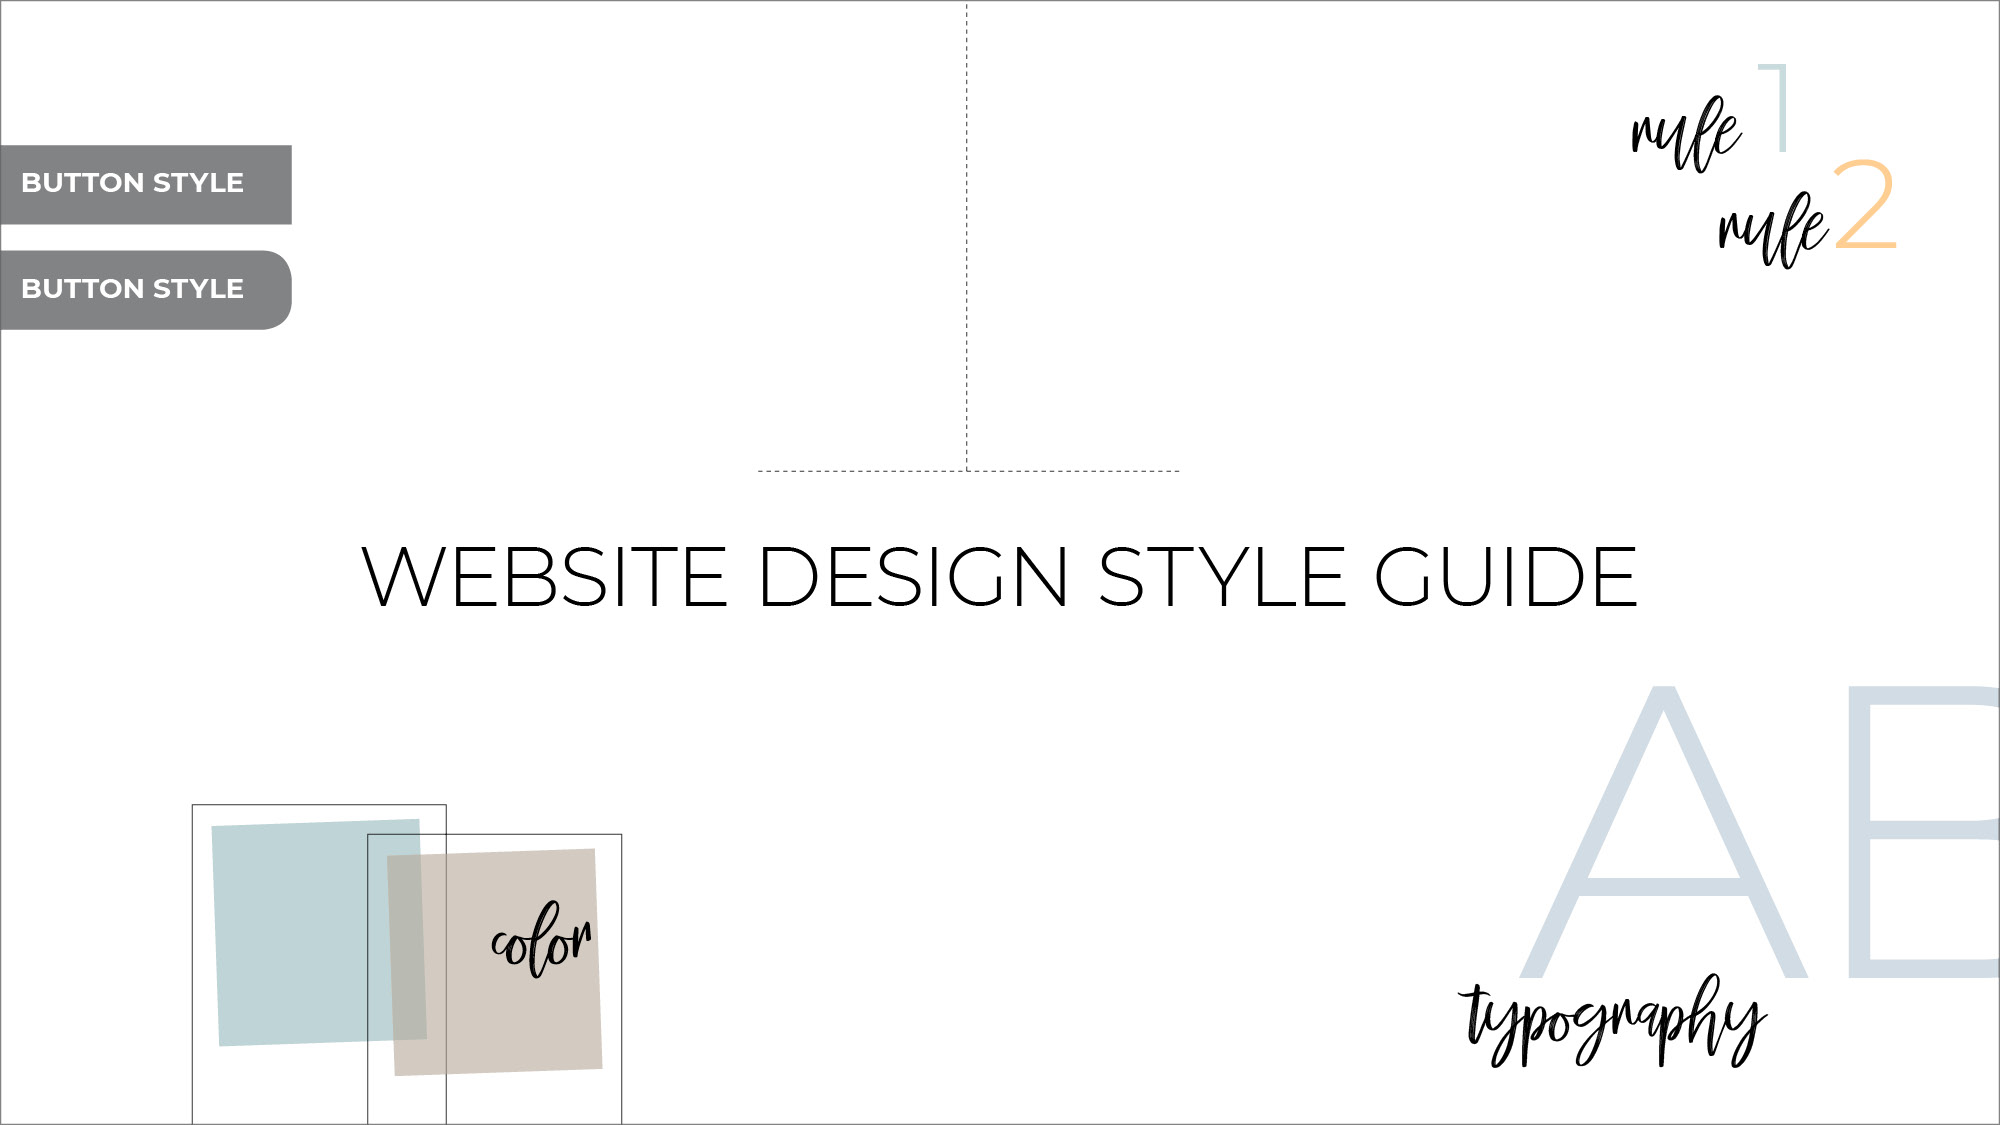 Six reasons why your website needs a design style guide